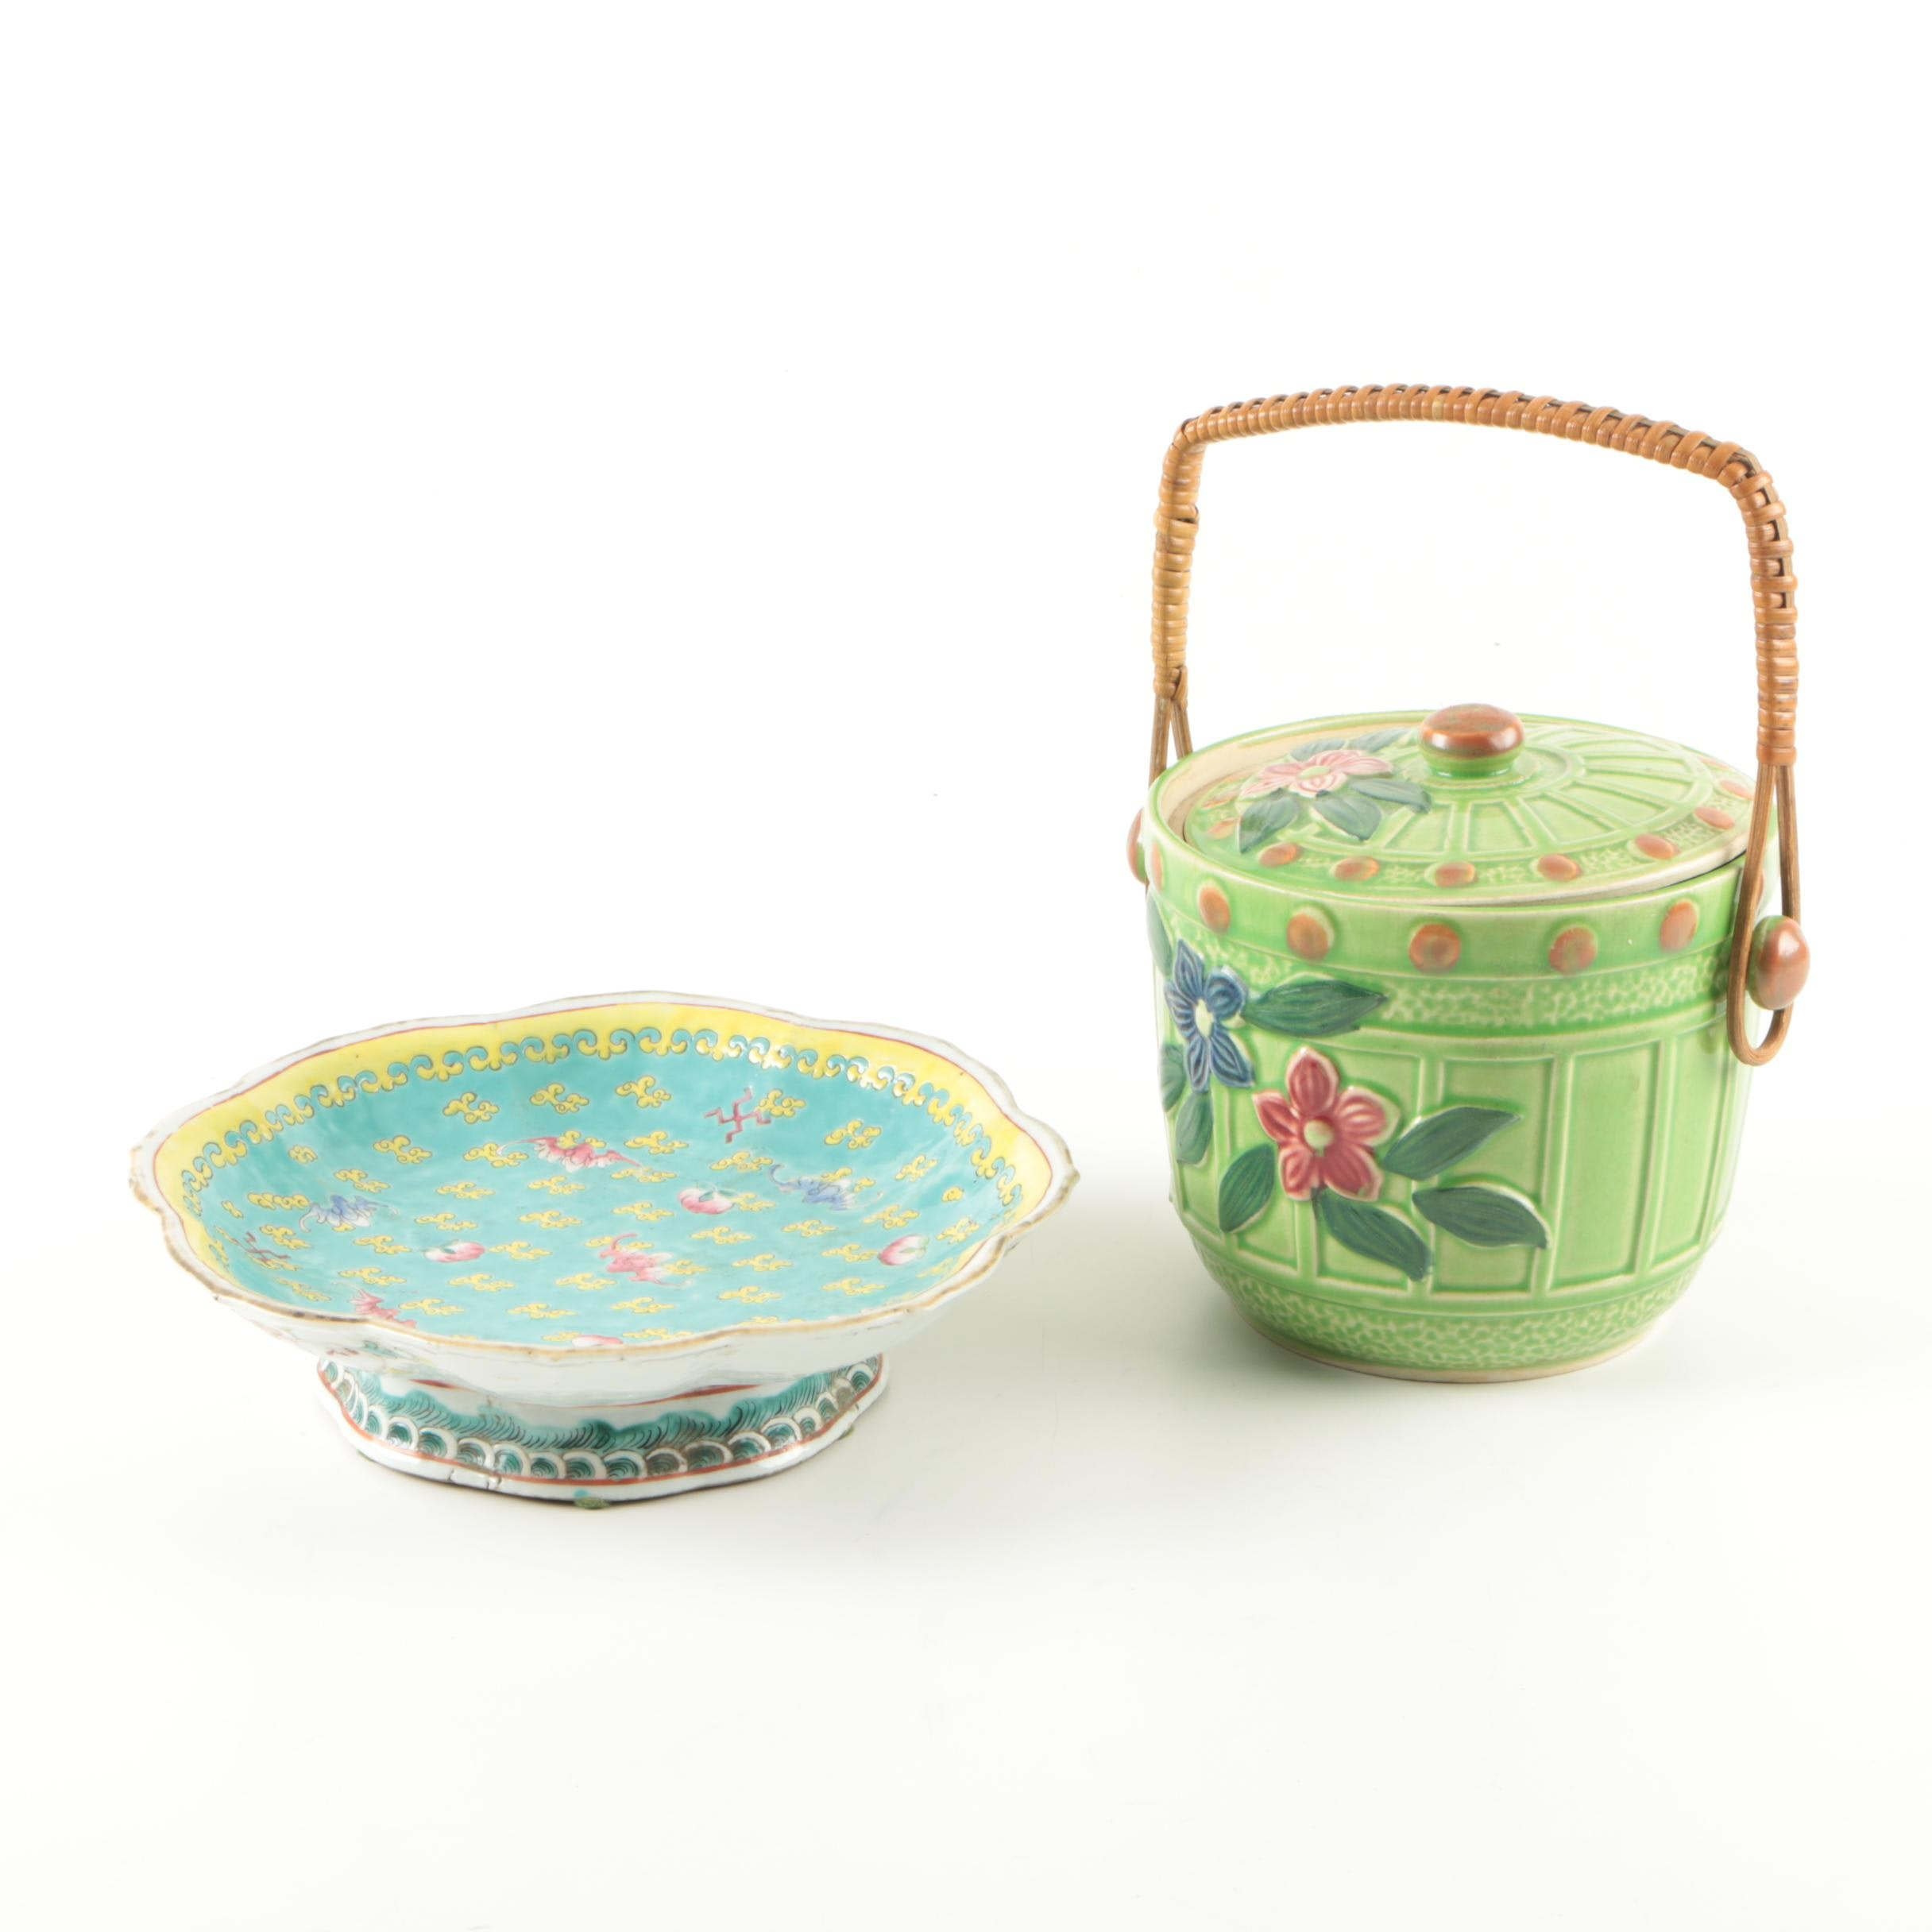 Vintage Chinese Enameled Porcelain Bowl and More